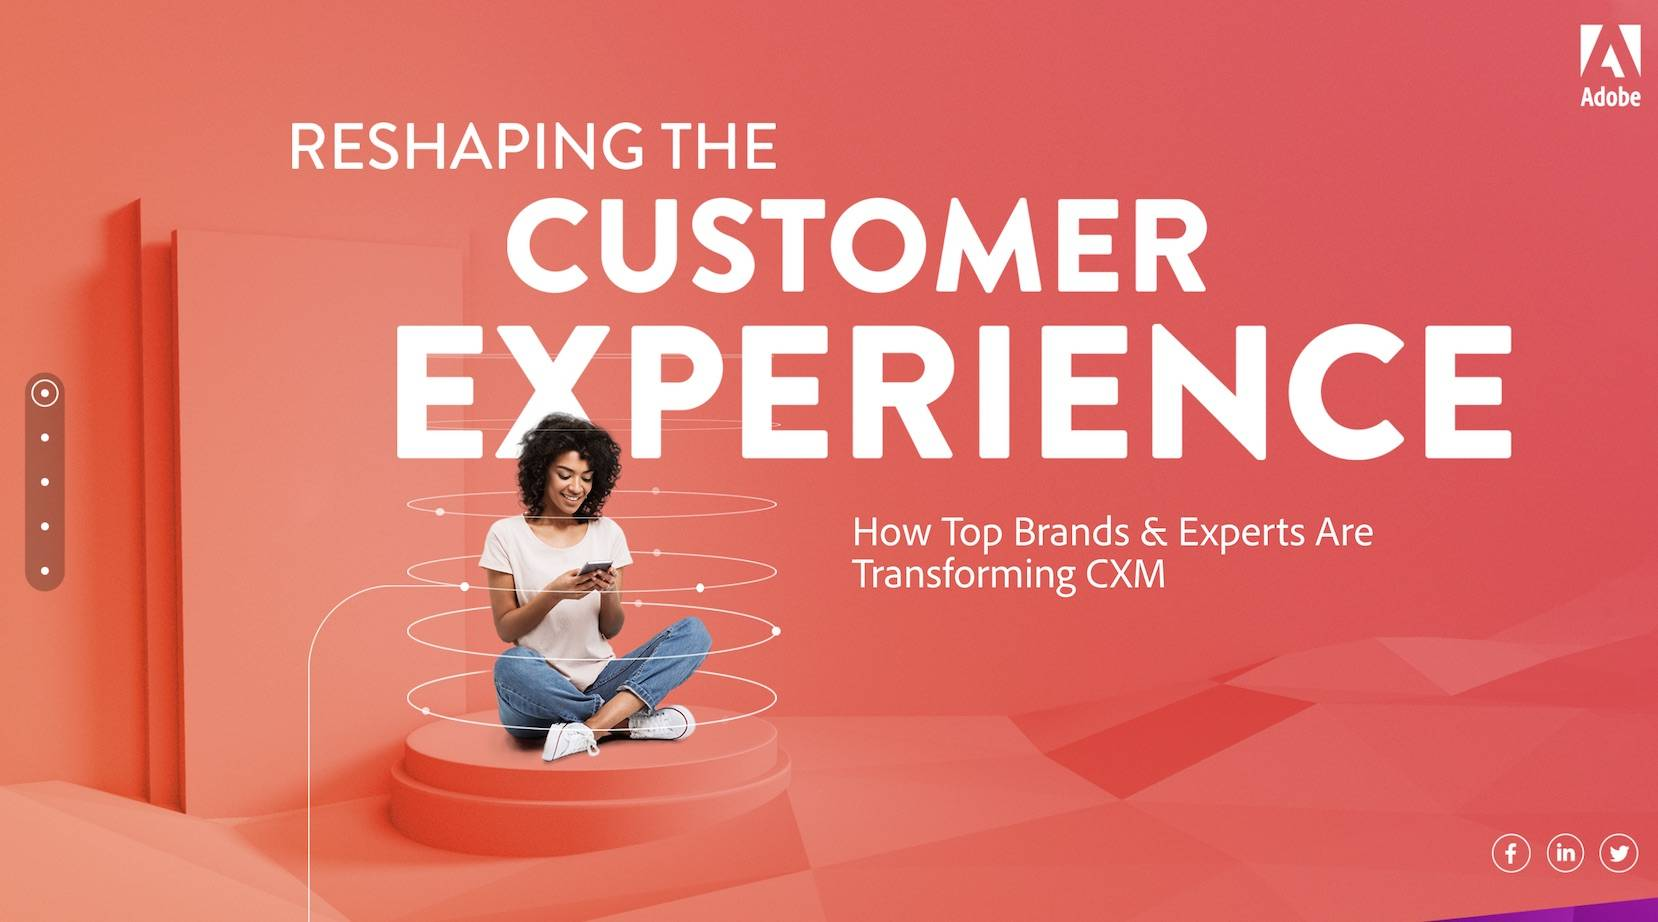 the Adobe CXM website homepage design for B2B audiences that effectively leads visitors through by telling a story